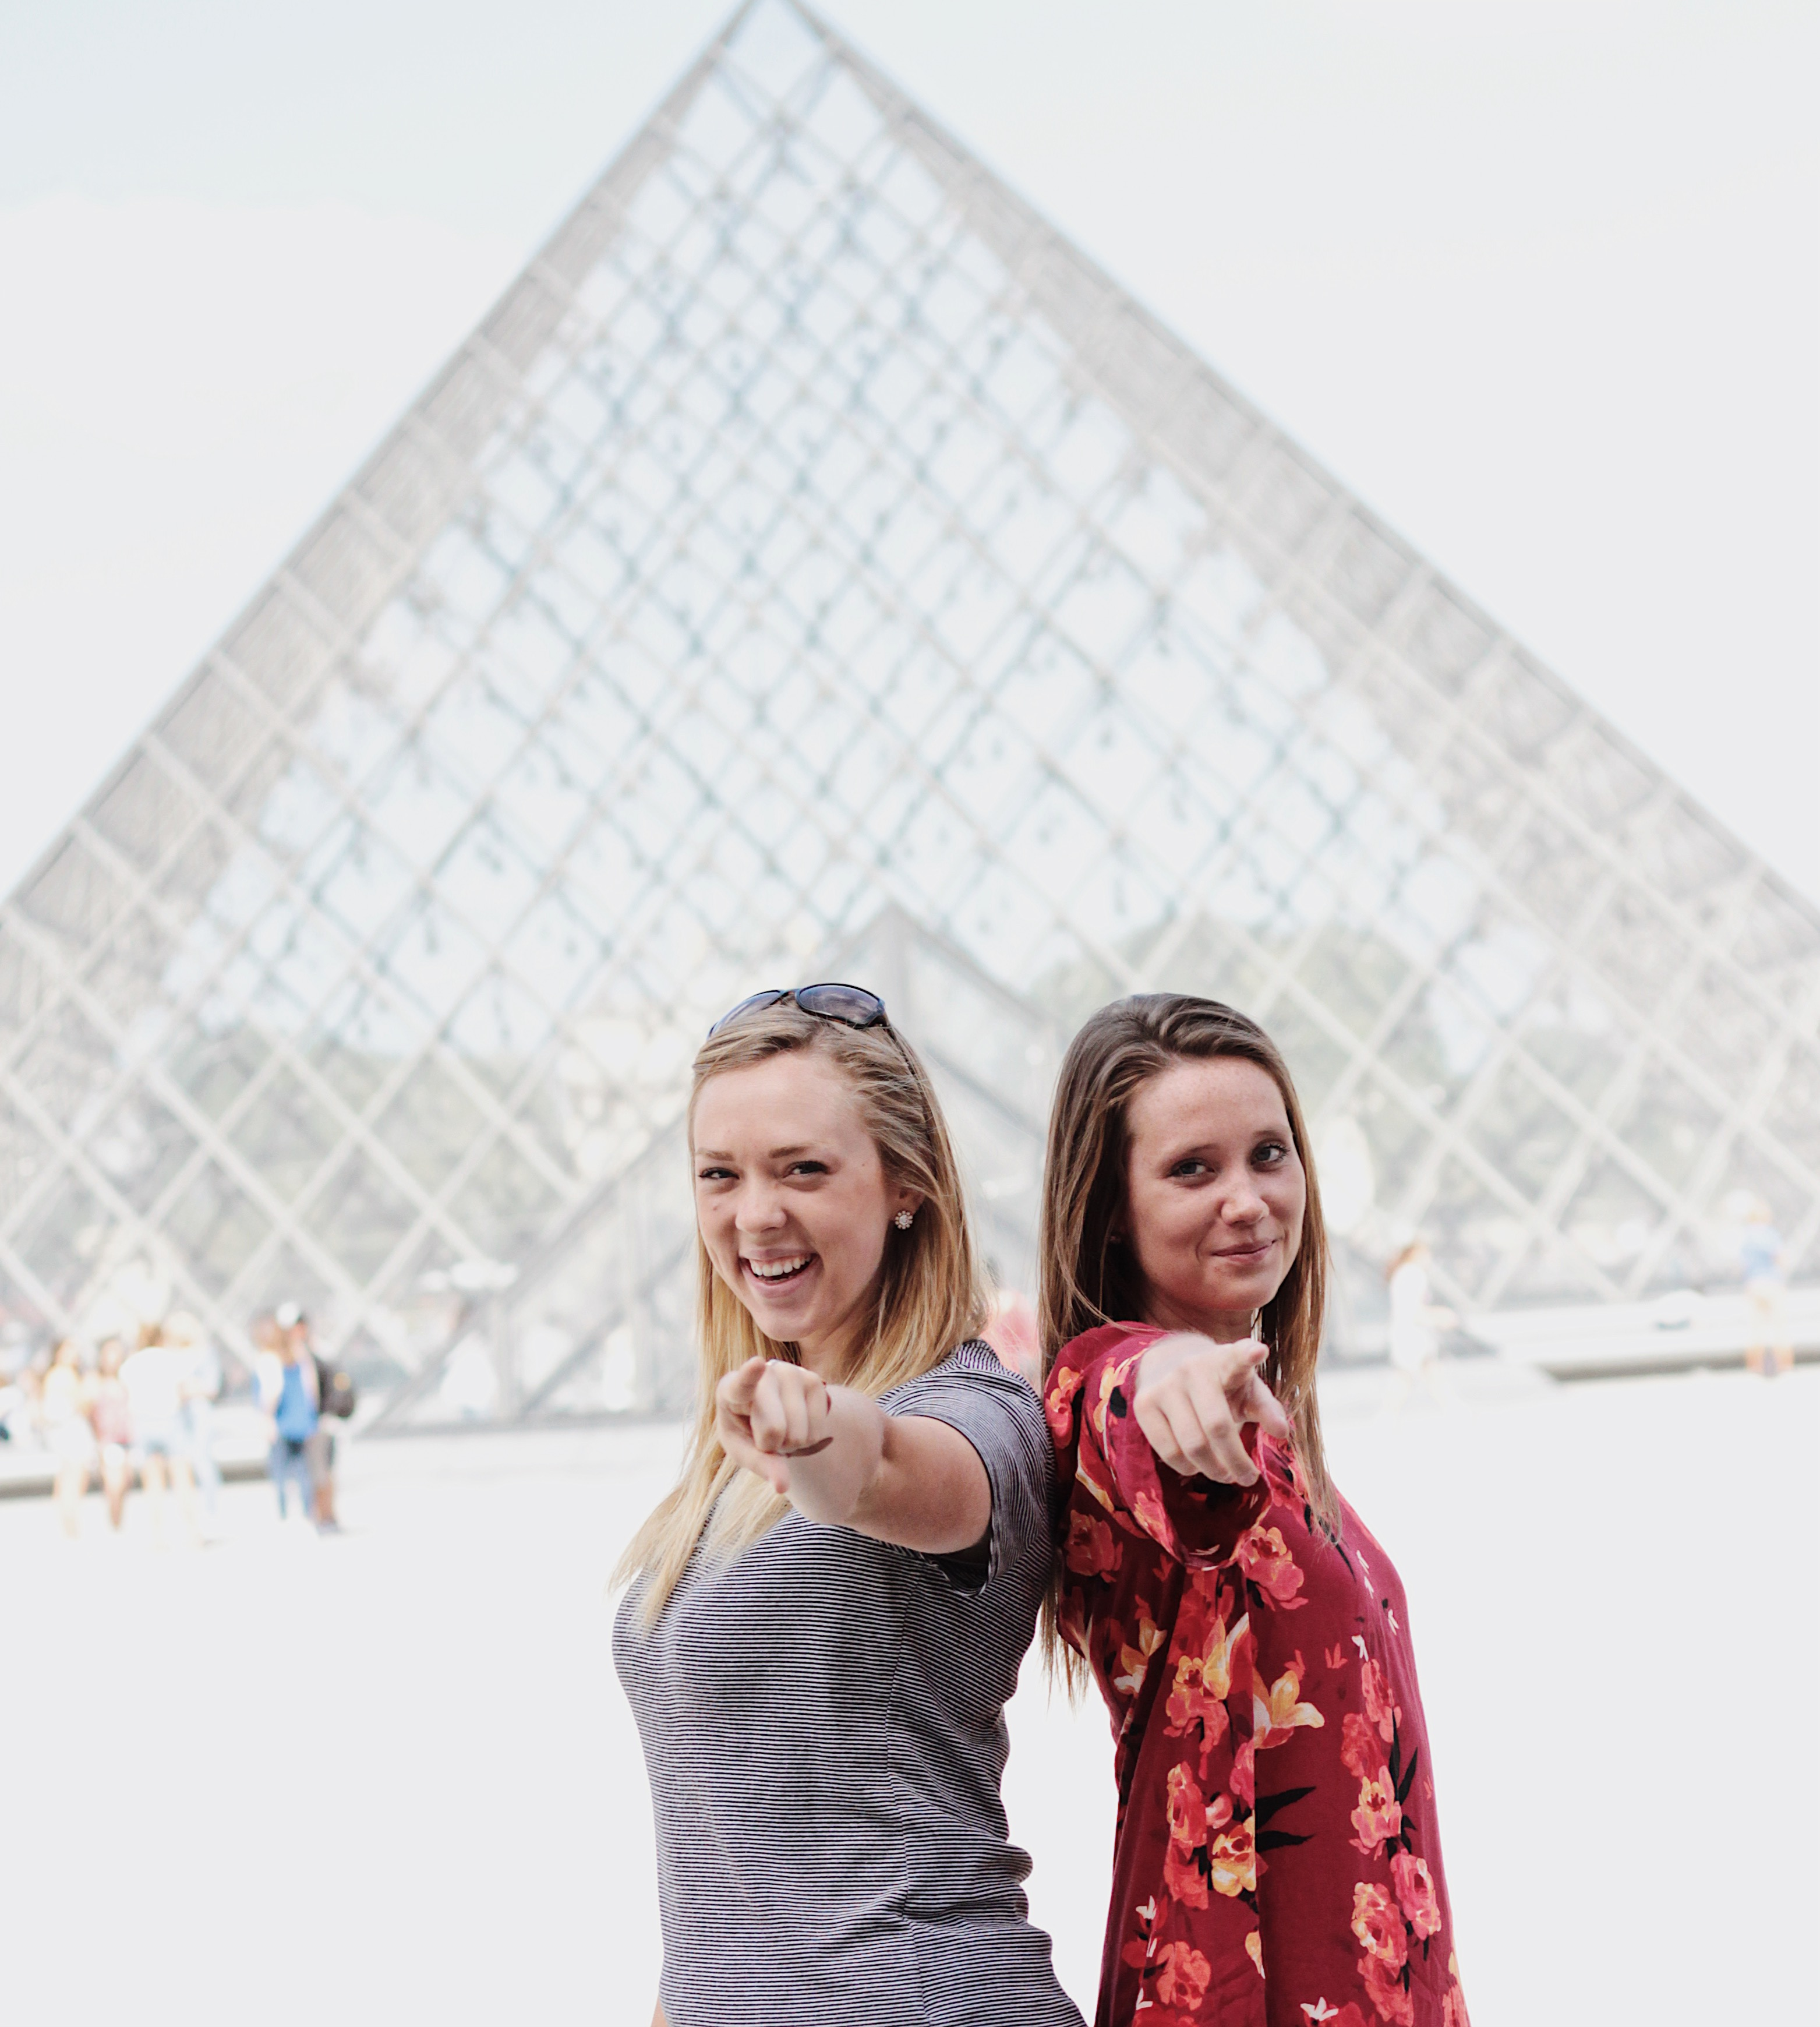 ILP Volunteers at the Louvre